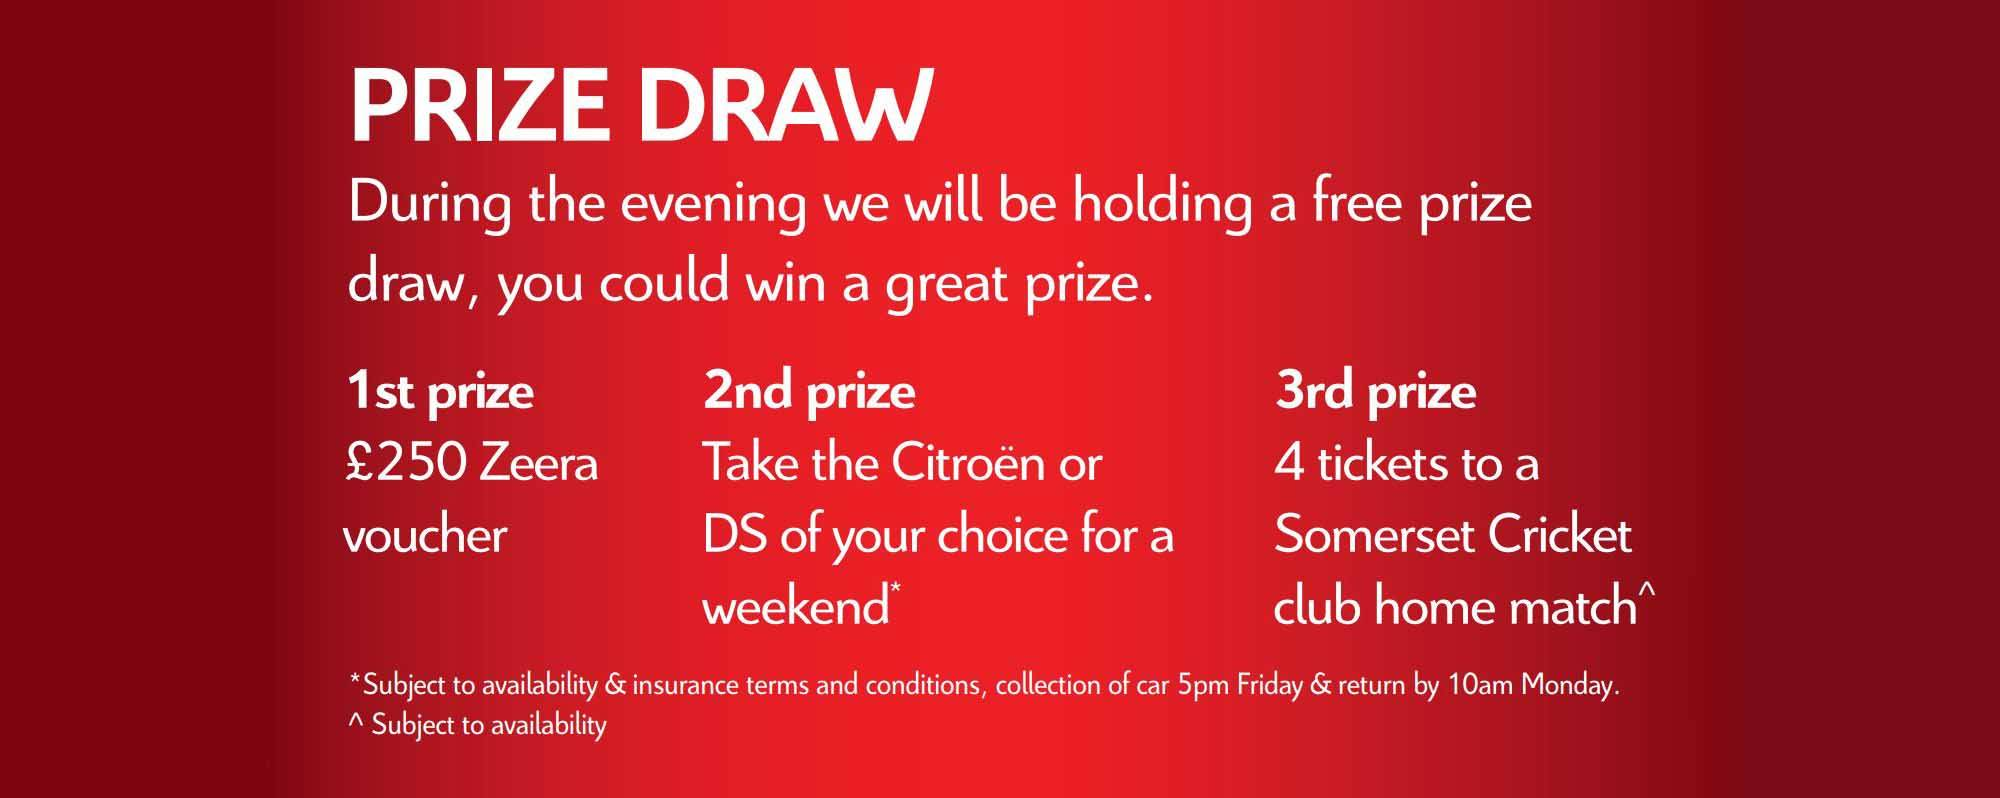 Prize Draw Launch Room